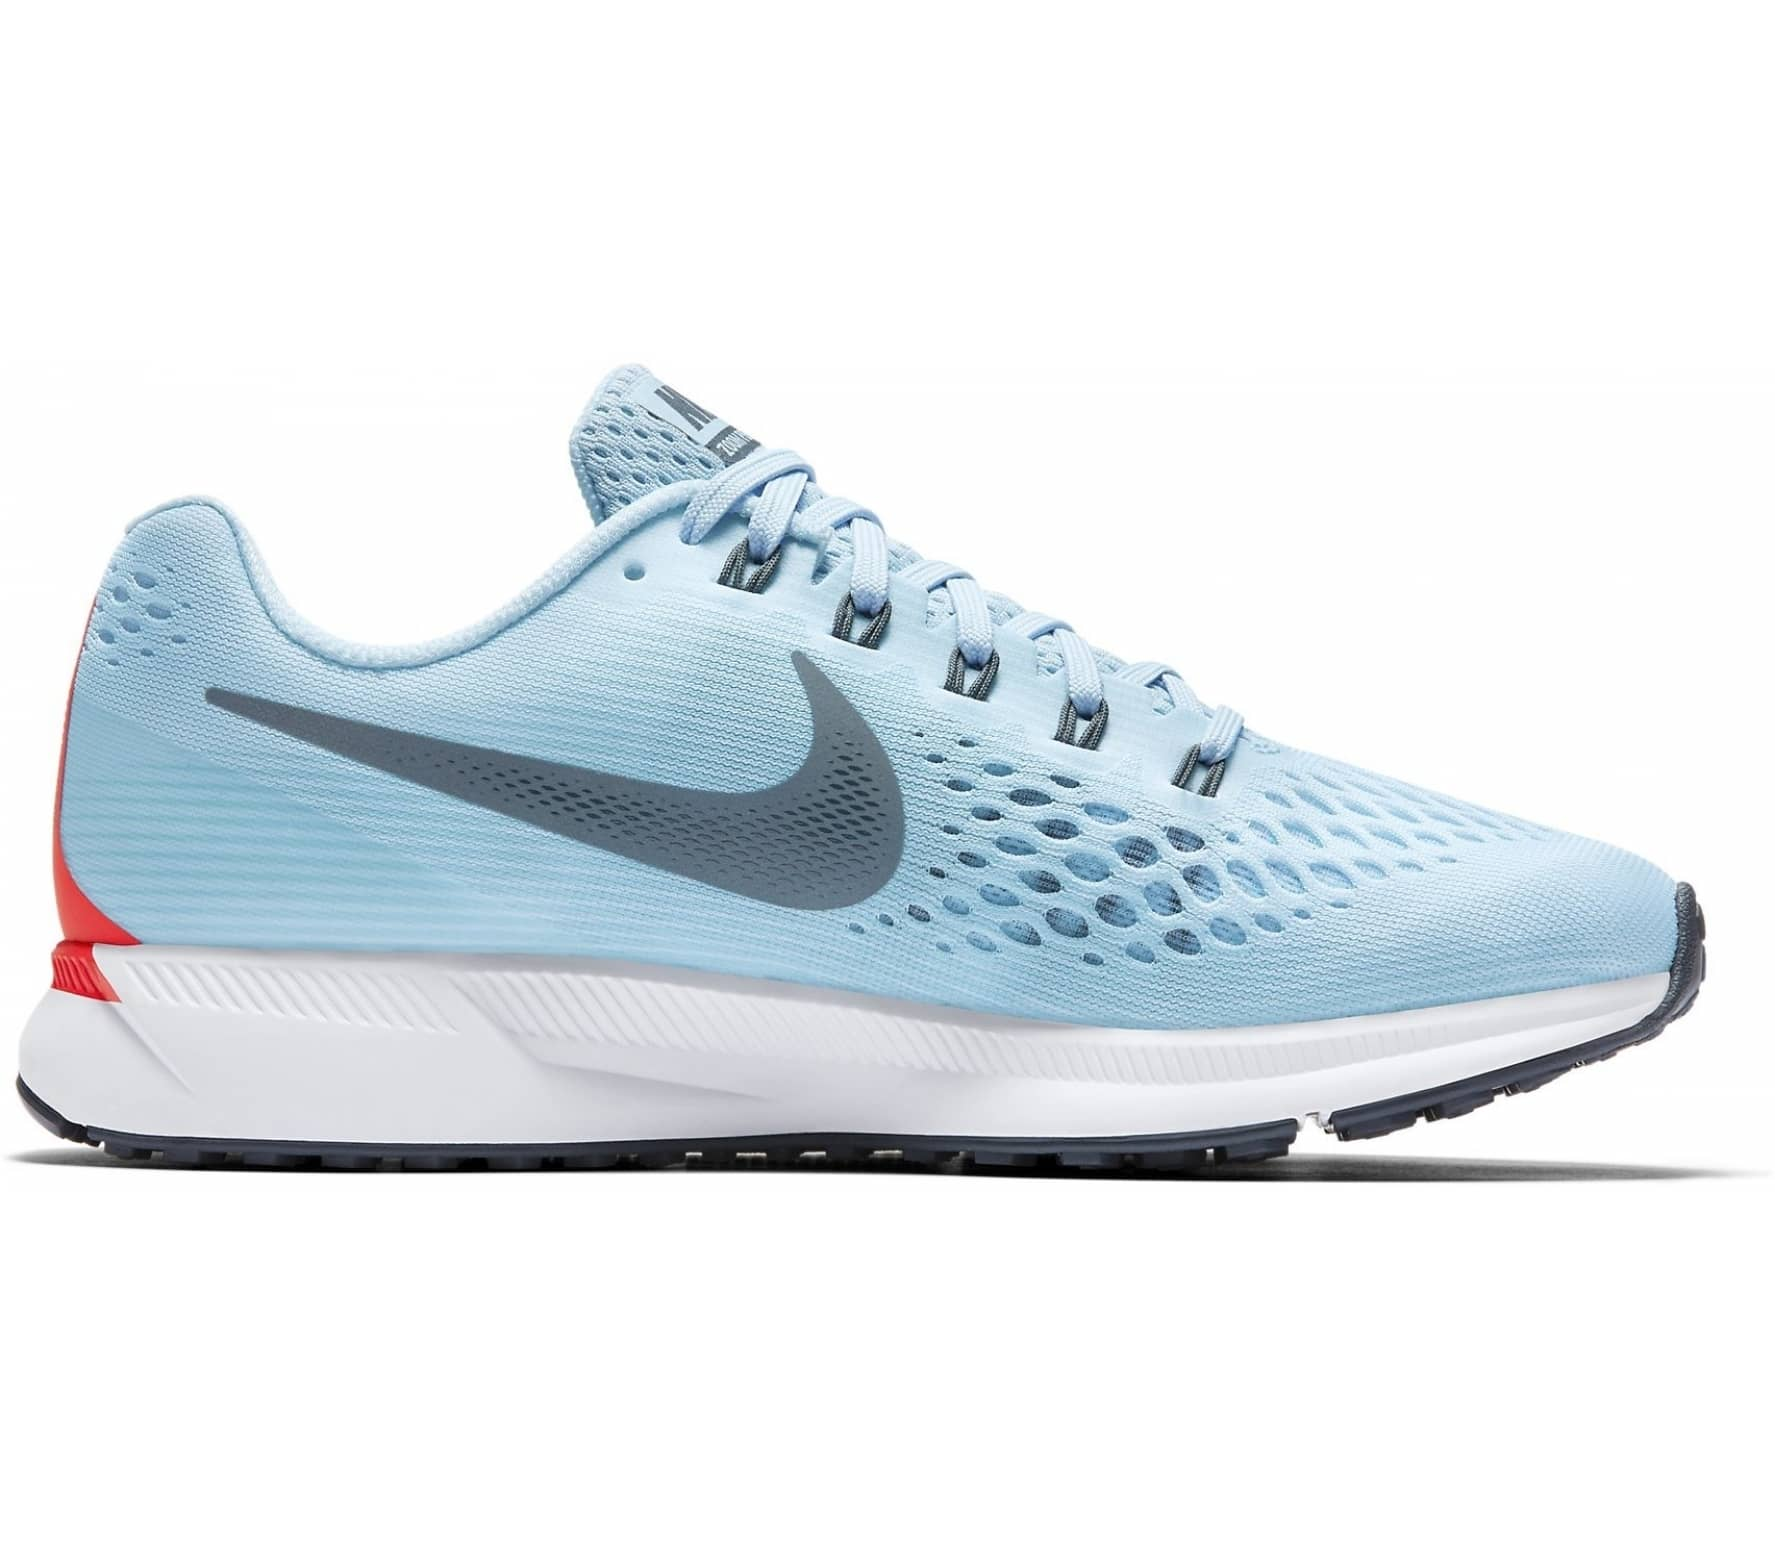 b77e1b26a5be Nike - Air Zoom Pegasus 34 women s running shoes (light blue) - buy ...